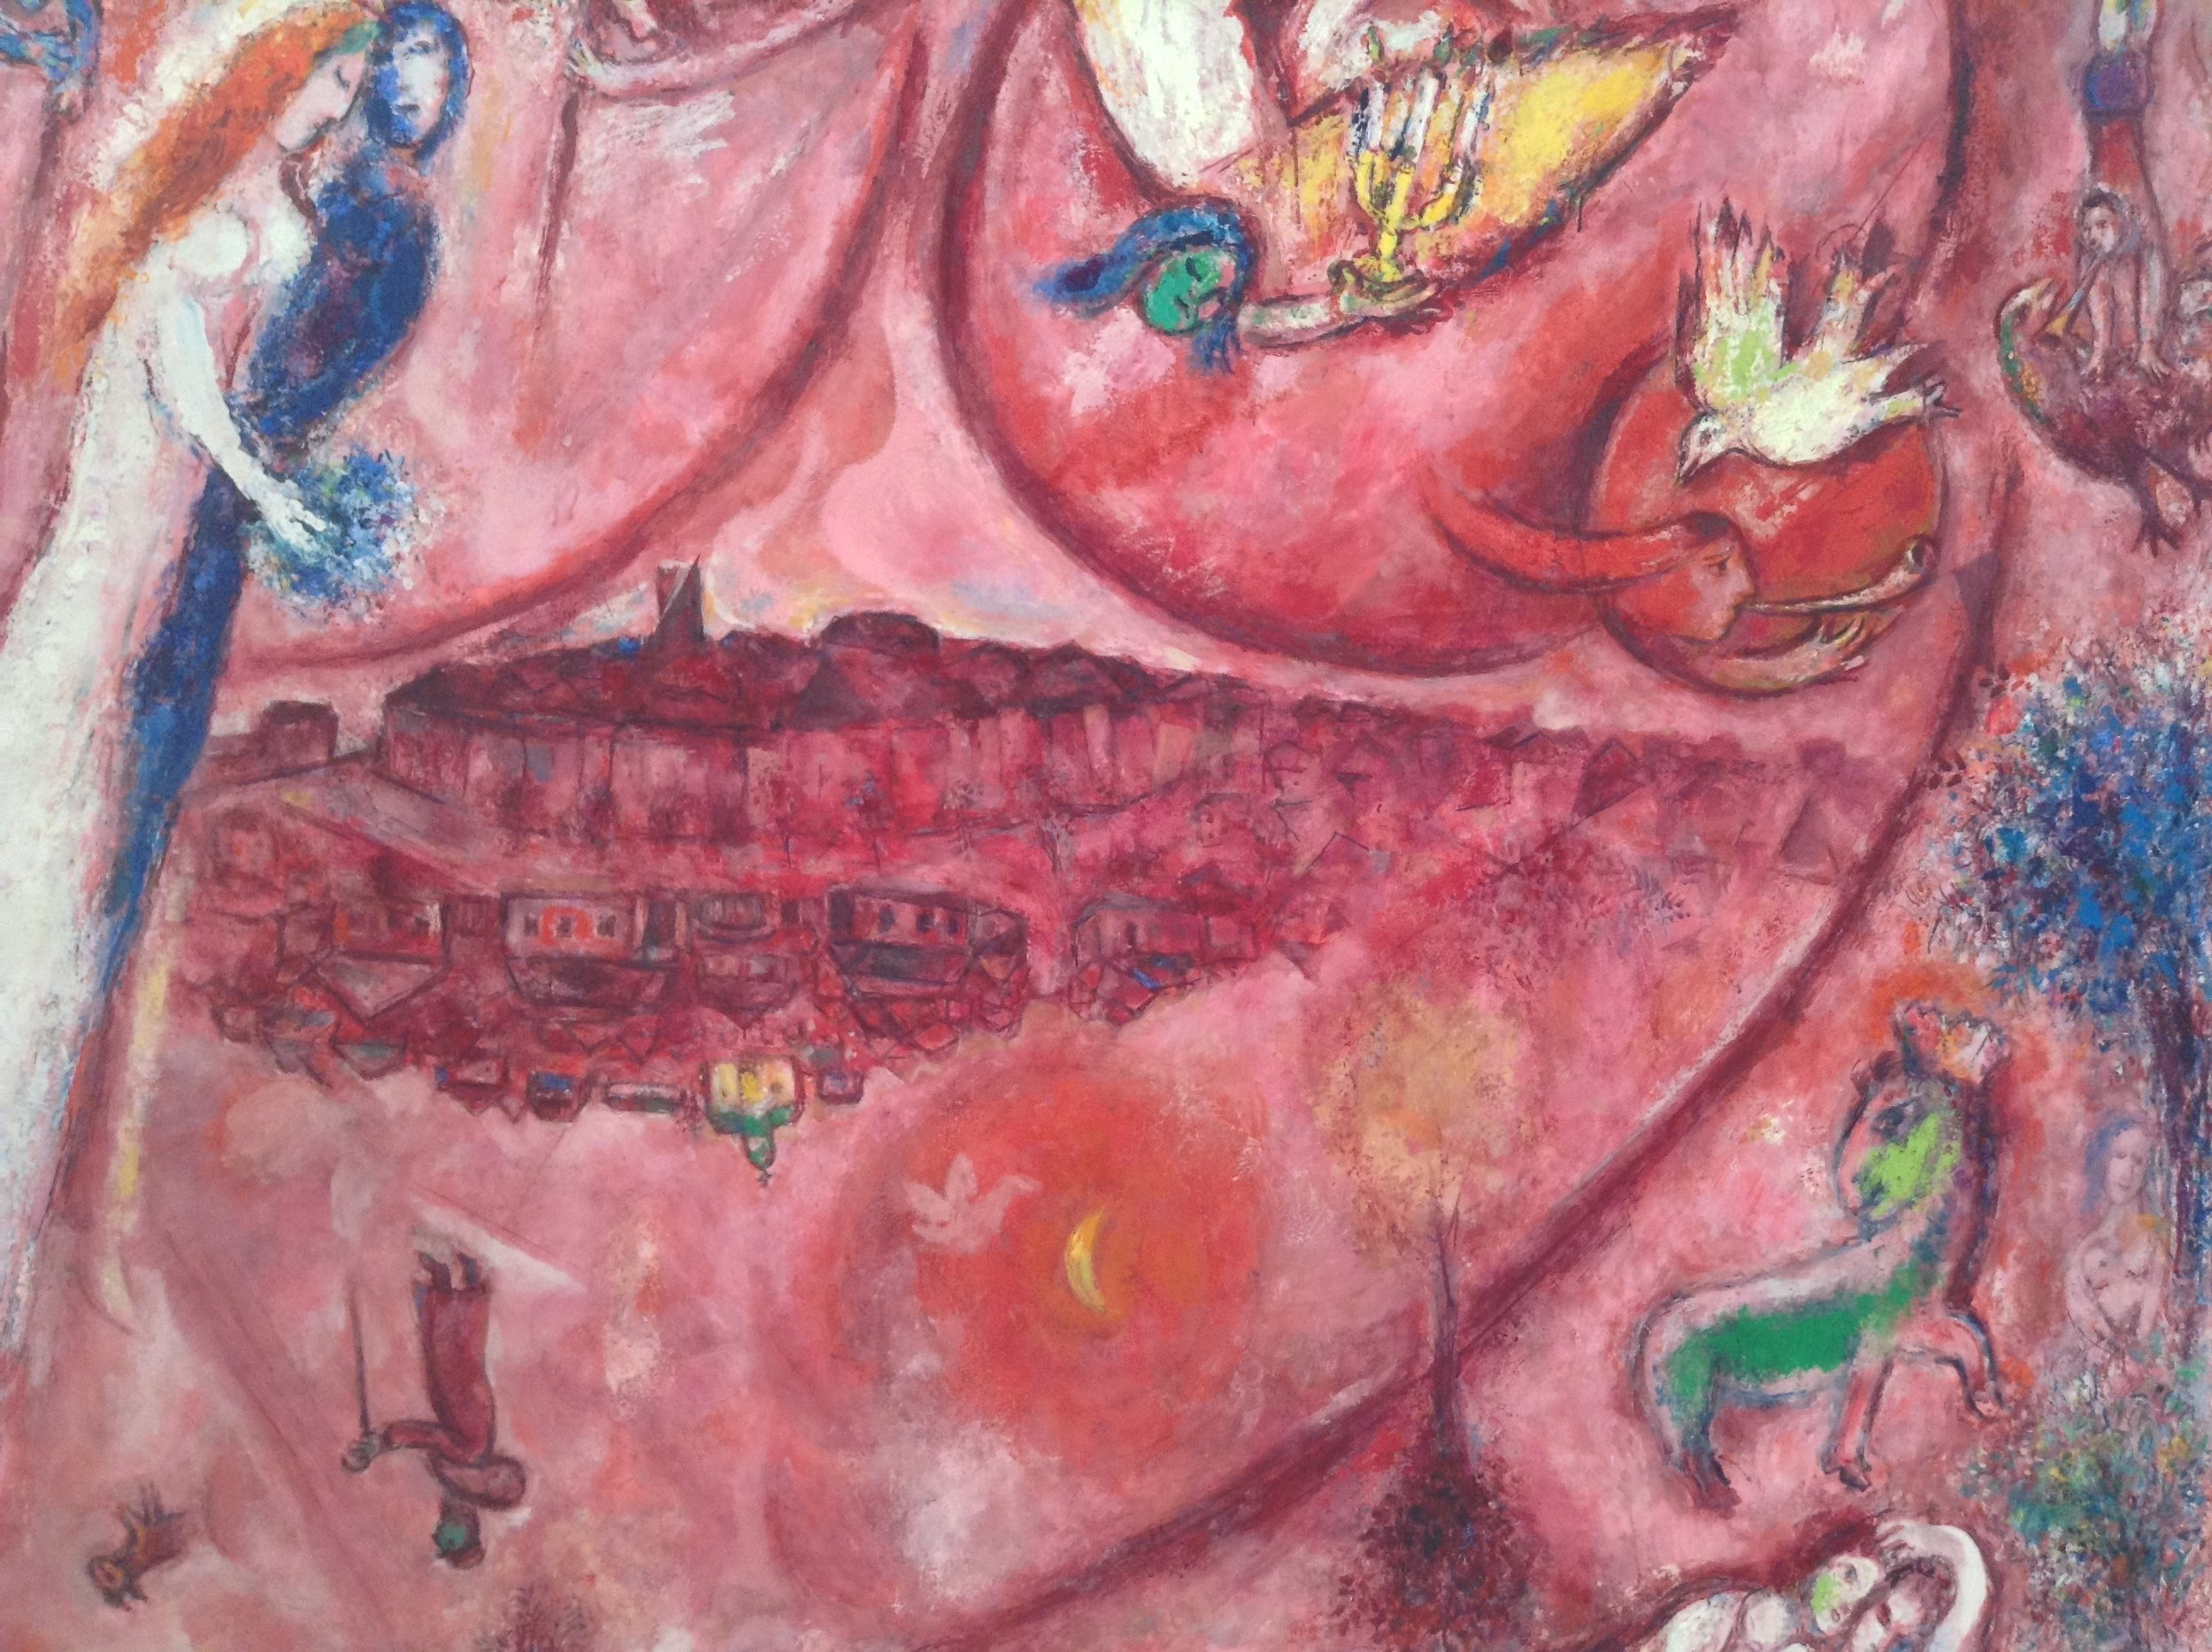 """Mon amant est pour moi un sachet de myrrhe, il nuite entre mes seins"" (""My lover is for me a sachet of myrrh; he stays the night between my breasts"") by Marc Chagall, in Nice's Musée Marc Chagall. Photo (slightly cropped) by RYC."